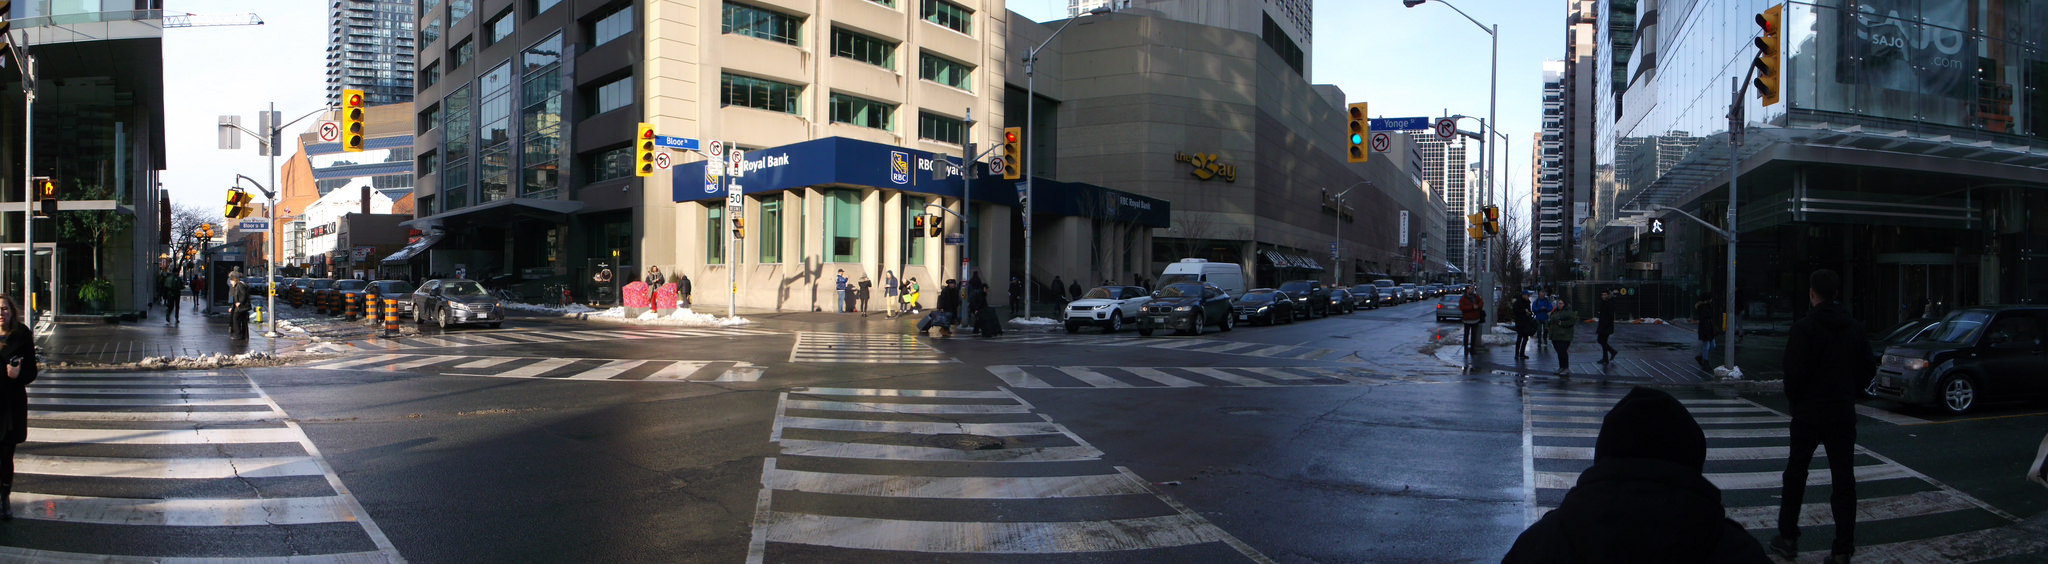 Street view of The Bay on Bloor and Yonge.